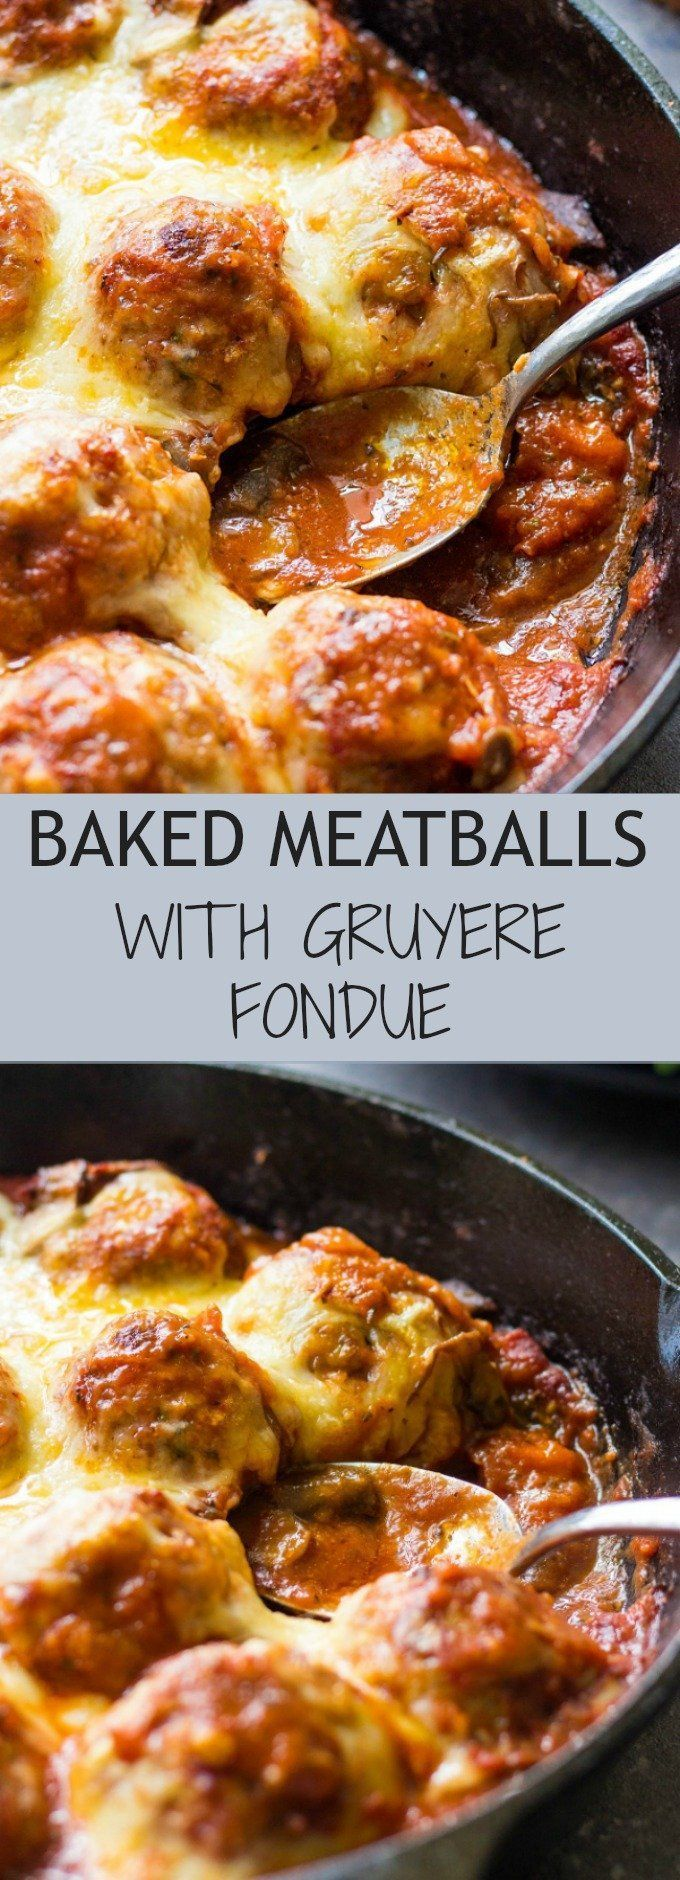 If you're looking for easy dinner recipes, try my Easy Baked Meatballs with Mushrooms and Gruyere Fondue. These homemade Meatballs are packed with flavor and they'll make a scrumptious weeknight dinner recipe for family.